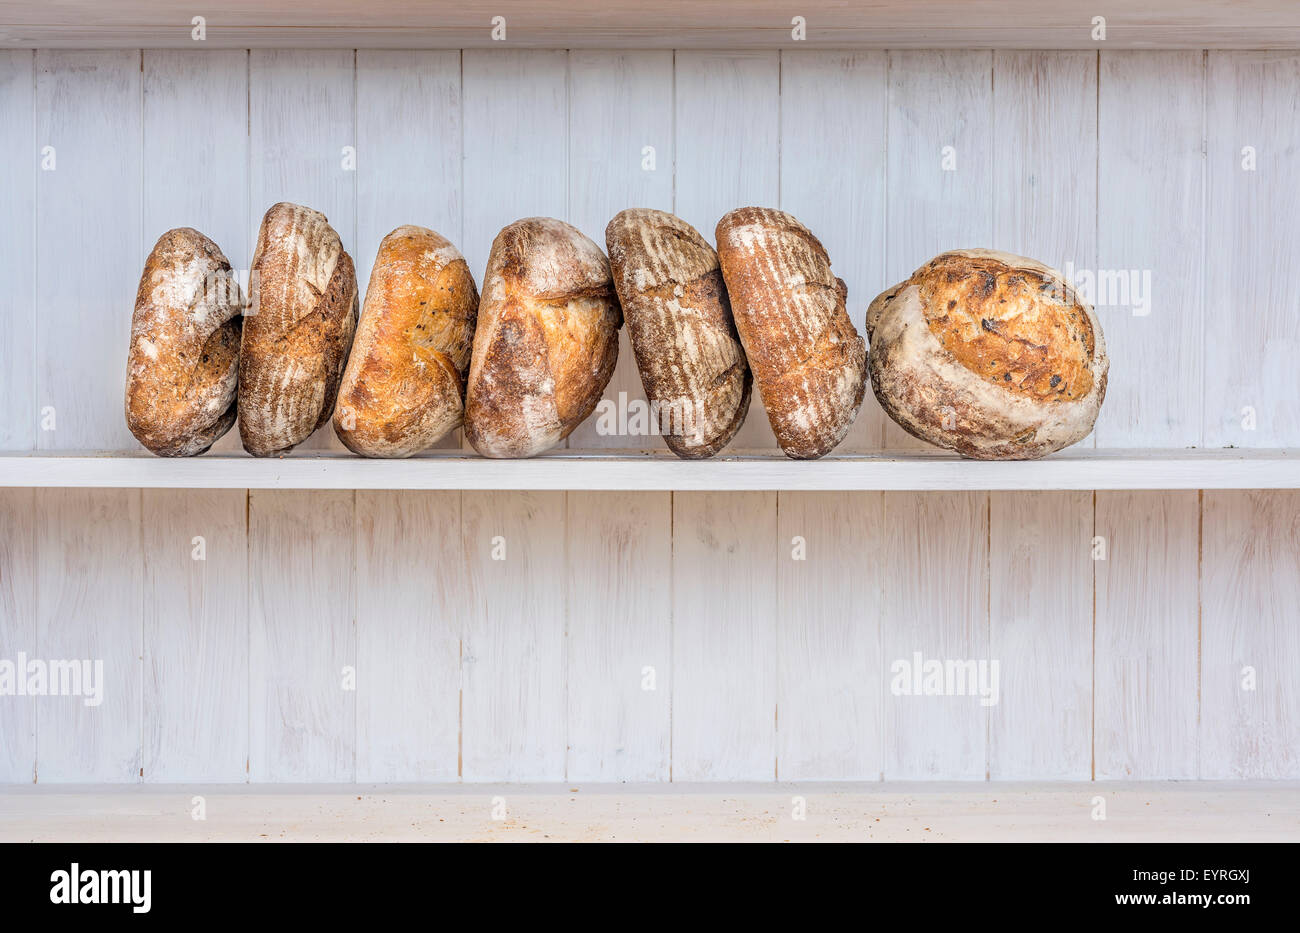 Various traditionally made sourdough breads in a bakery, Devon UK - Stock Image